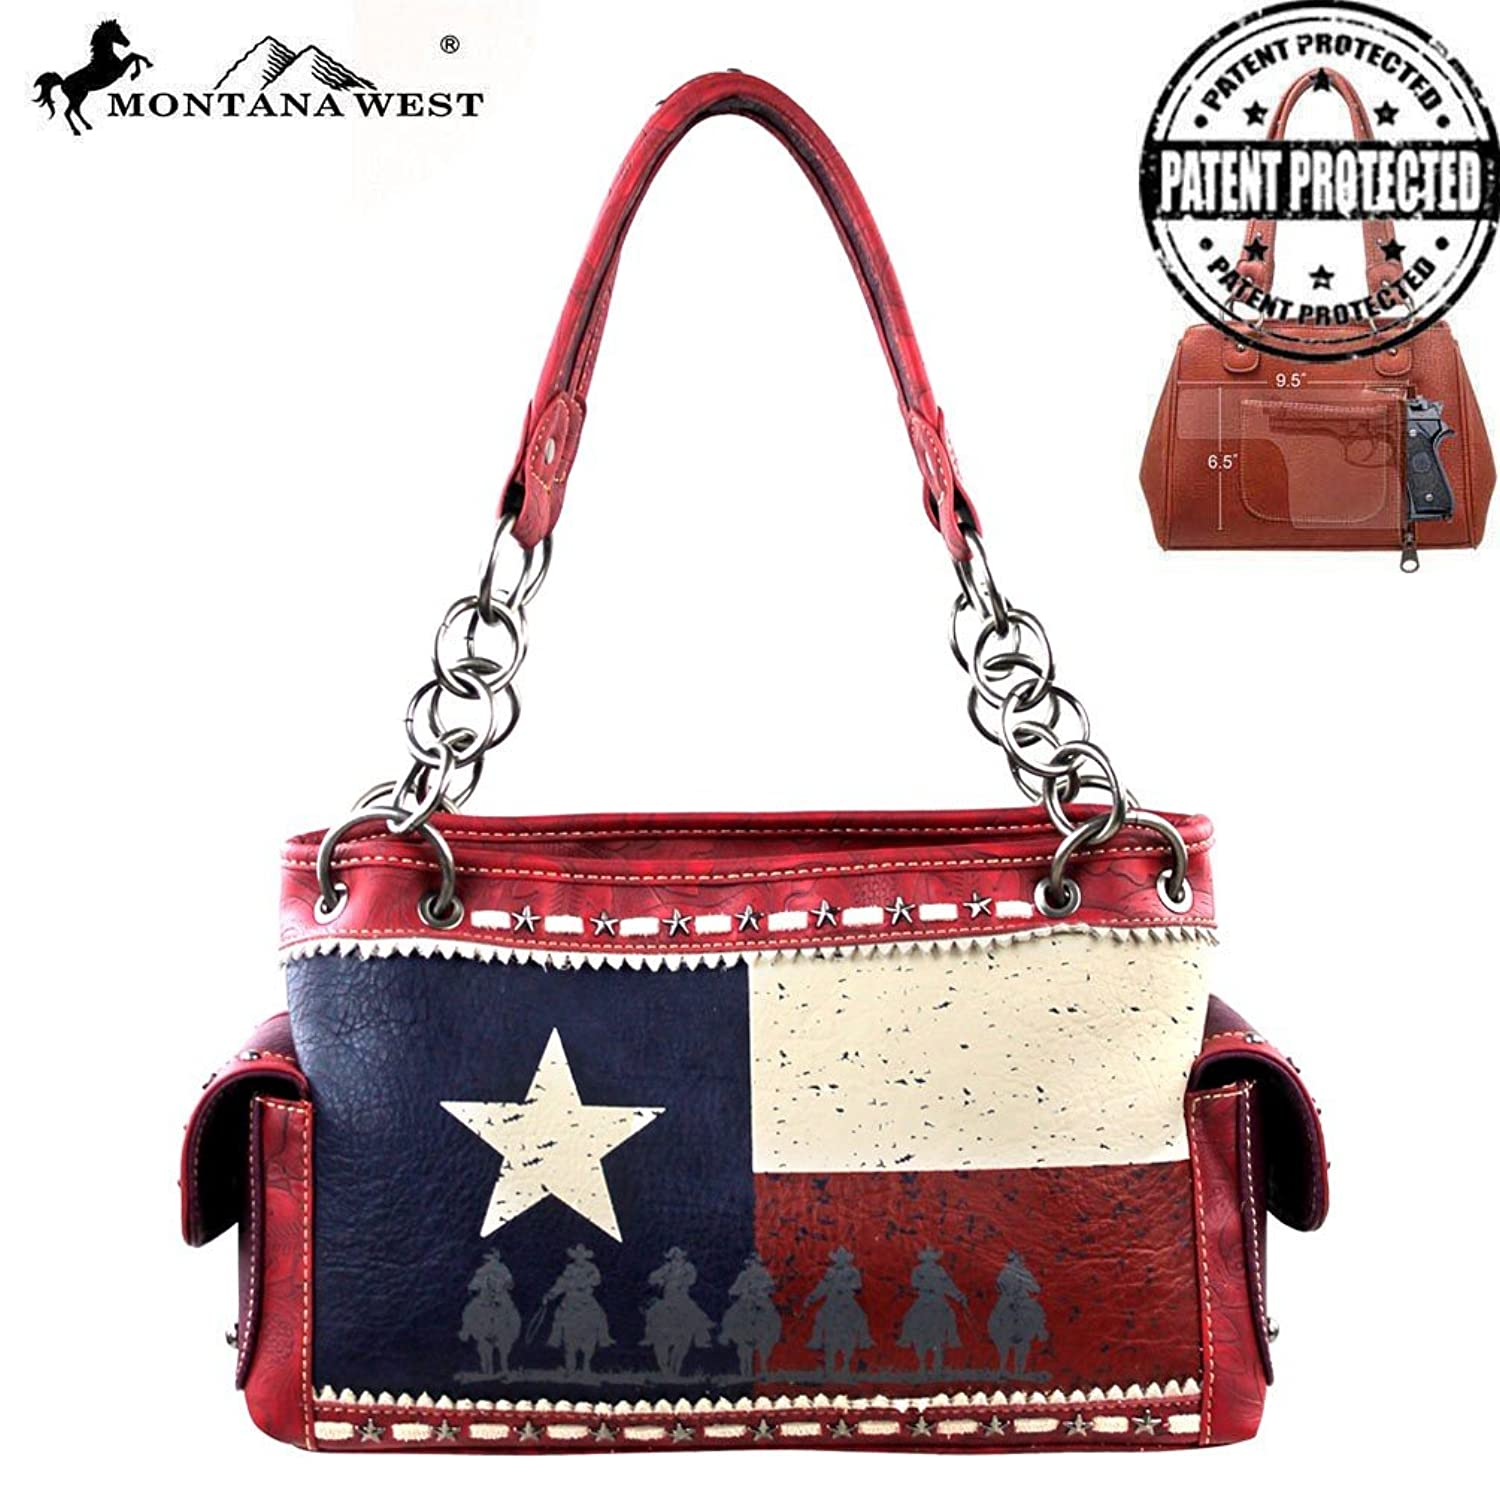 Montana West Texas Pride Collection Concealed Carry Handbag Red Mw219g-8085